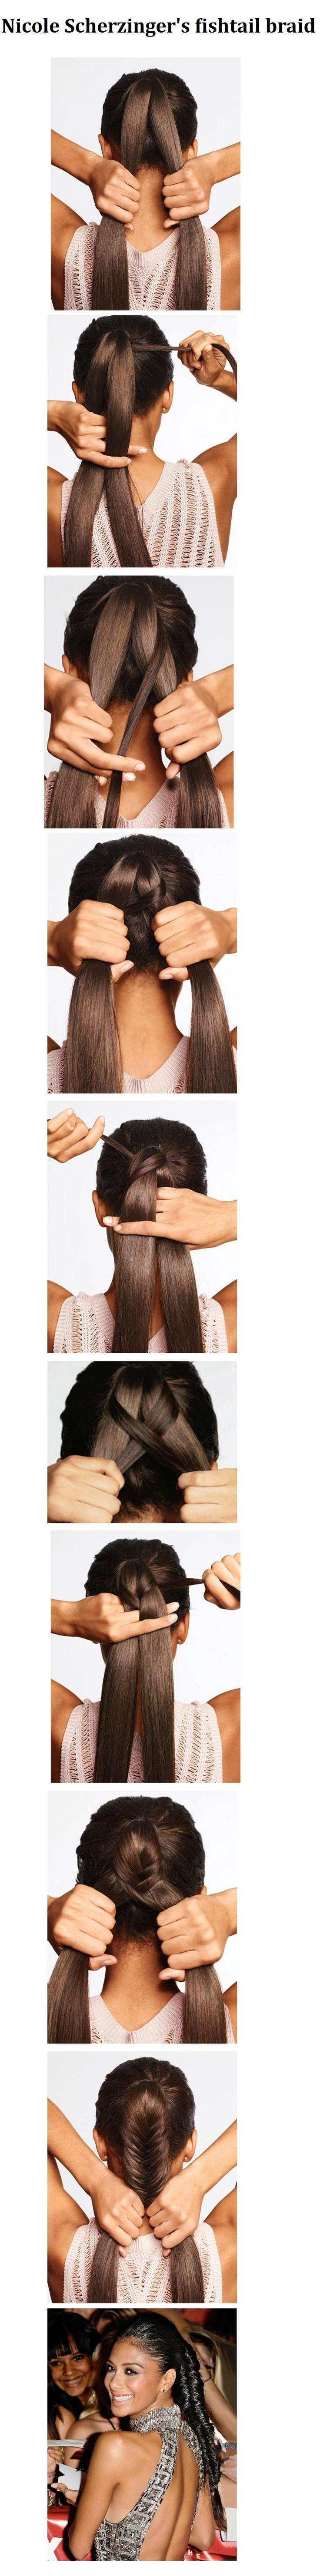 style for hair braiding 1773 jpg 736 215 5930 ʚ hair inspiration ʚ 5930